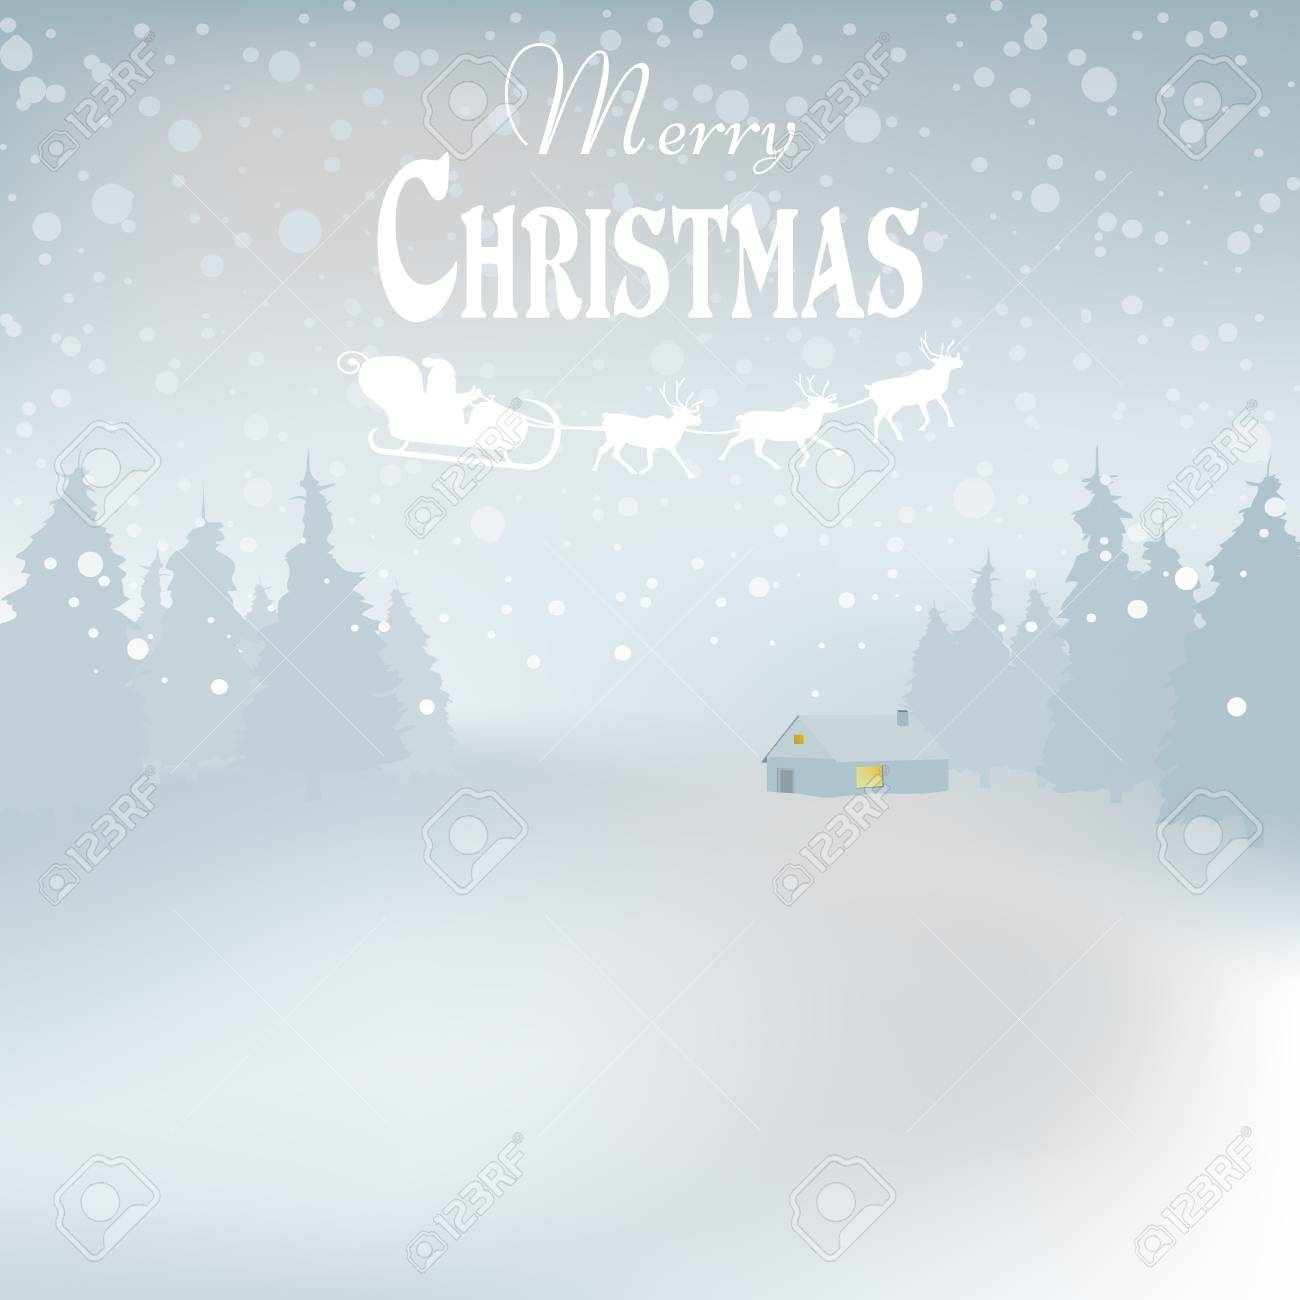 Winder snowy landscape with trees, vector illustration. Background. - 68098596